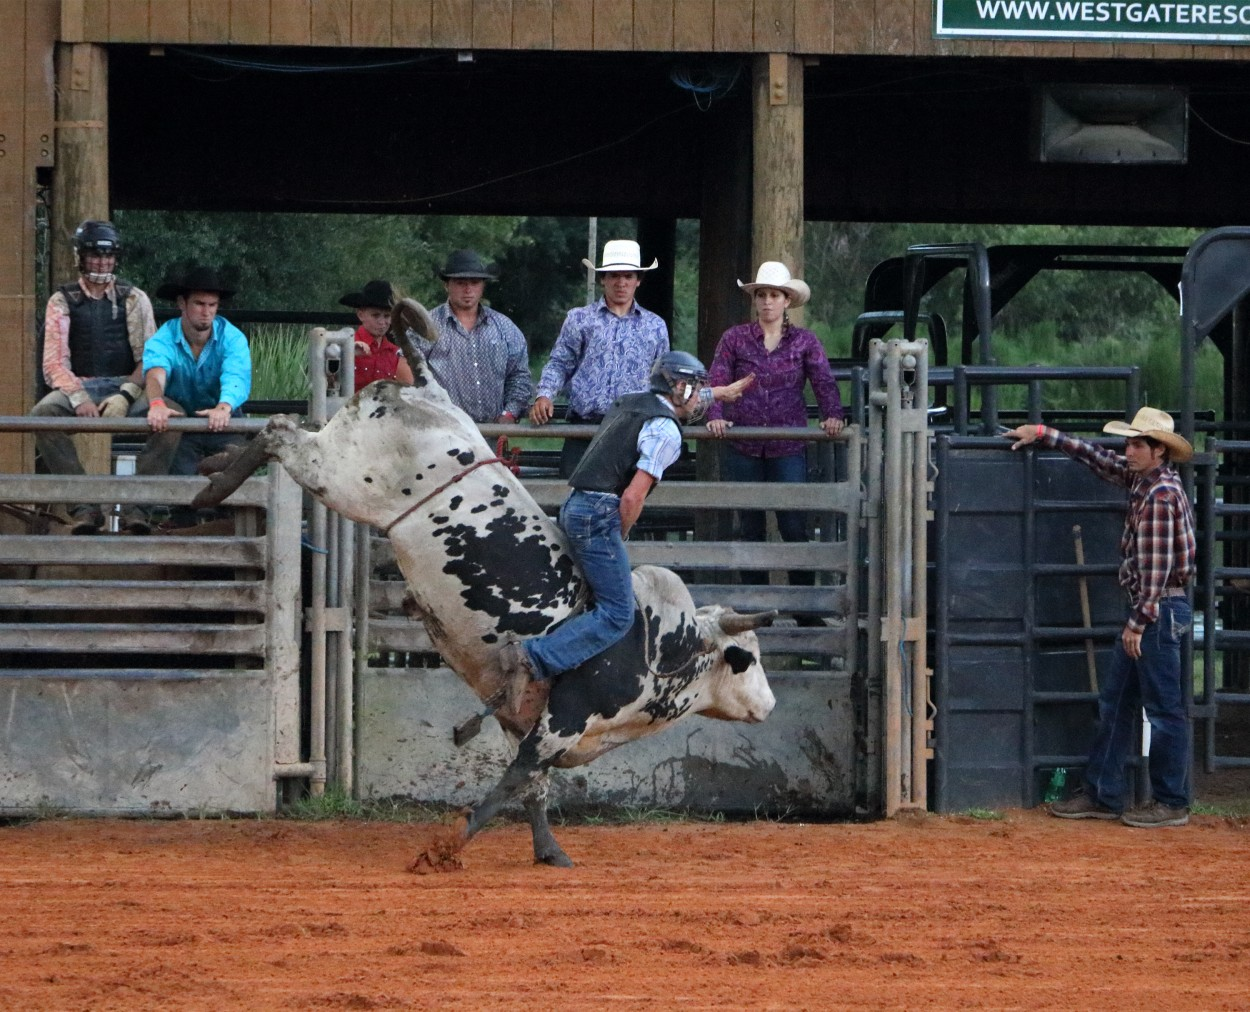 River Ranch Florida >> Saddle Up At Florida S Westgate River Ranch Atlanta Jewish Times